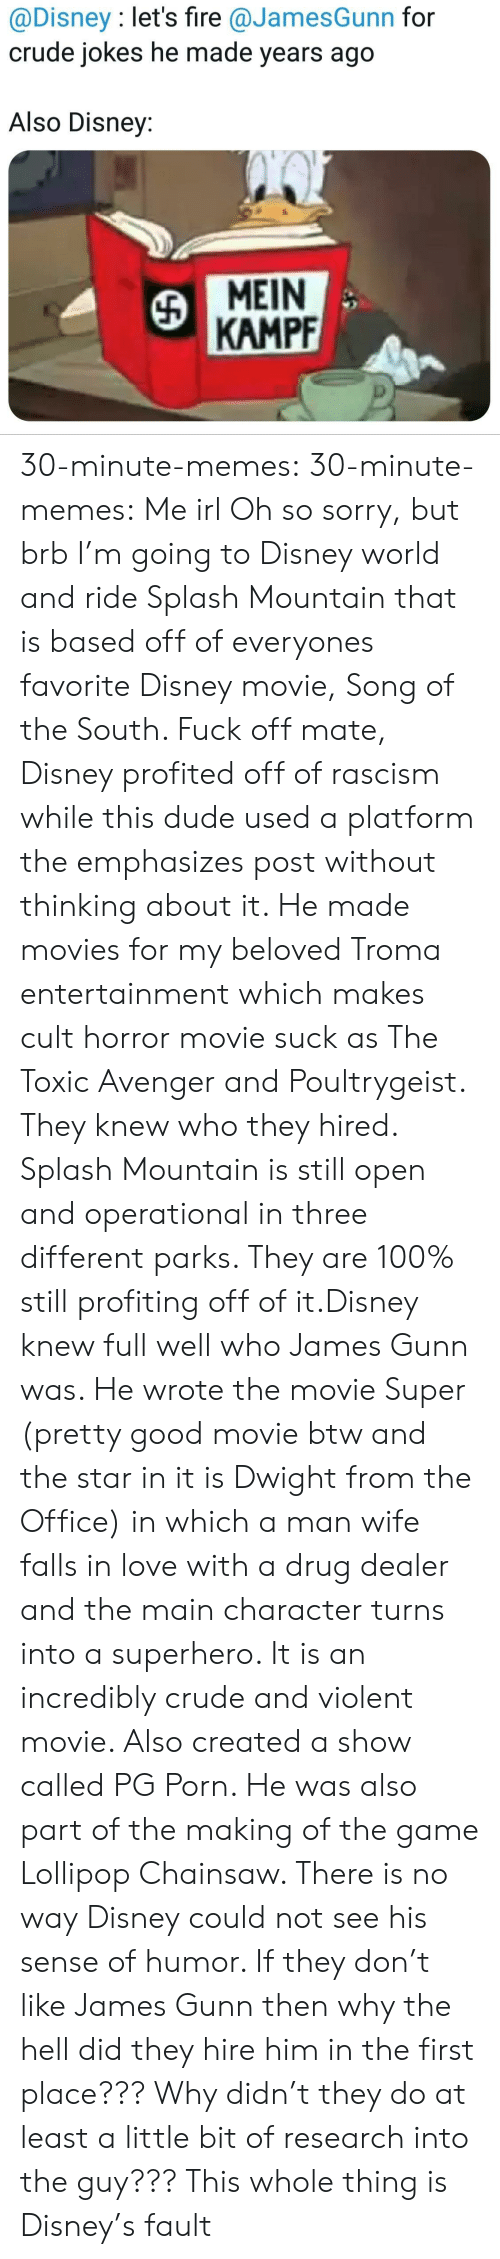 Why The Hell: @Disney : let's fire @JamesGunn for  crude jokes he made years ago  Also Disney:  MEIN  KAMPF 30-minute-memes: 30-minute-memes: Me irl Oh so sorry, but brb I'm going to Disney world and ride Splash Mountain that is based off of everyones favorite Disney movie, Song of the South.  Fuck off mate, Disney profited off of rascism while this dude used a platform the emphasizes post without thinking about it. He made movies for my beloved Troma entertainment which makes cult horror movie suck as The Toxic Avenger and Poultrygeist. They knew who they hired.  Splash Mountain is still open and operational in three different parks. They are 100% still profiting off of it.Disney knew full well who James Gunn was. He wrote the movie Super (pretty good movie btw and the star in it is Dwight from the Office) in which a man wife falls in love with a drug dealer and the main character turns into a superhero. It is an incredibly crude and violent movie. Also created a show called PG Porn. He was also part of the making of the game Lollipop Chainsaw. There is no way Disney could not see his sense of humor. If they don't like James Gunn then why the hell did they hire him in the first place??? Why didn't they do at least a little bit of research into the guy??? This whole thing is Disney's fault